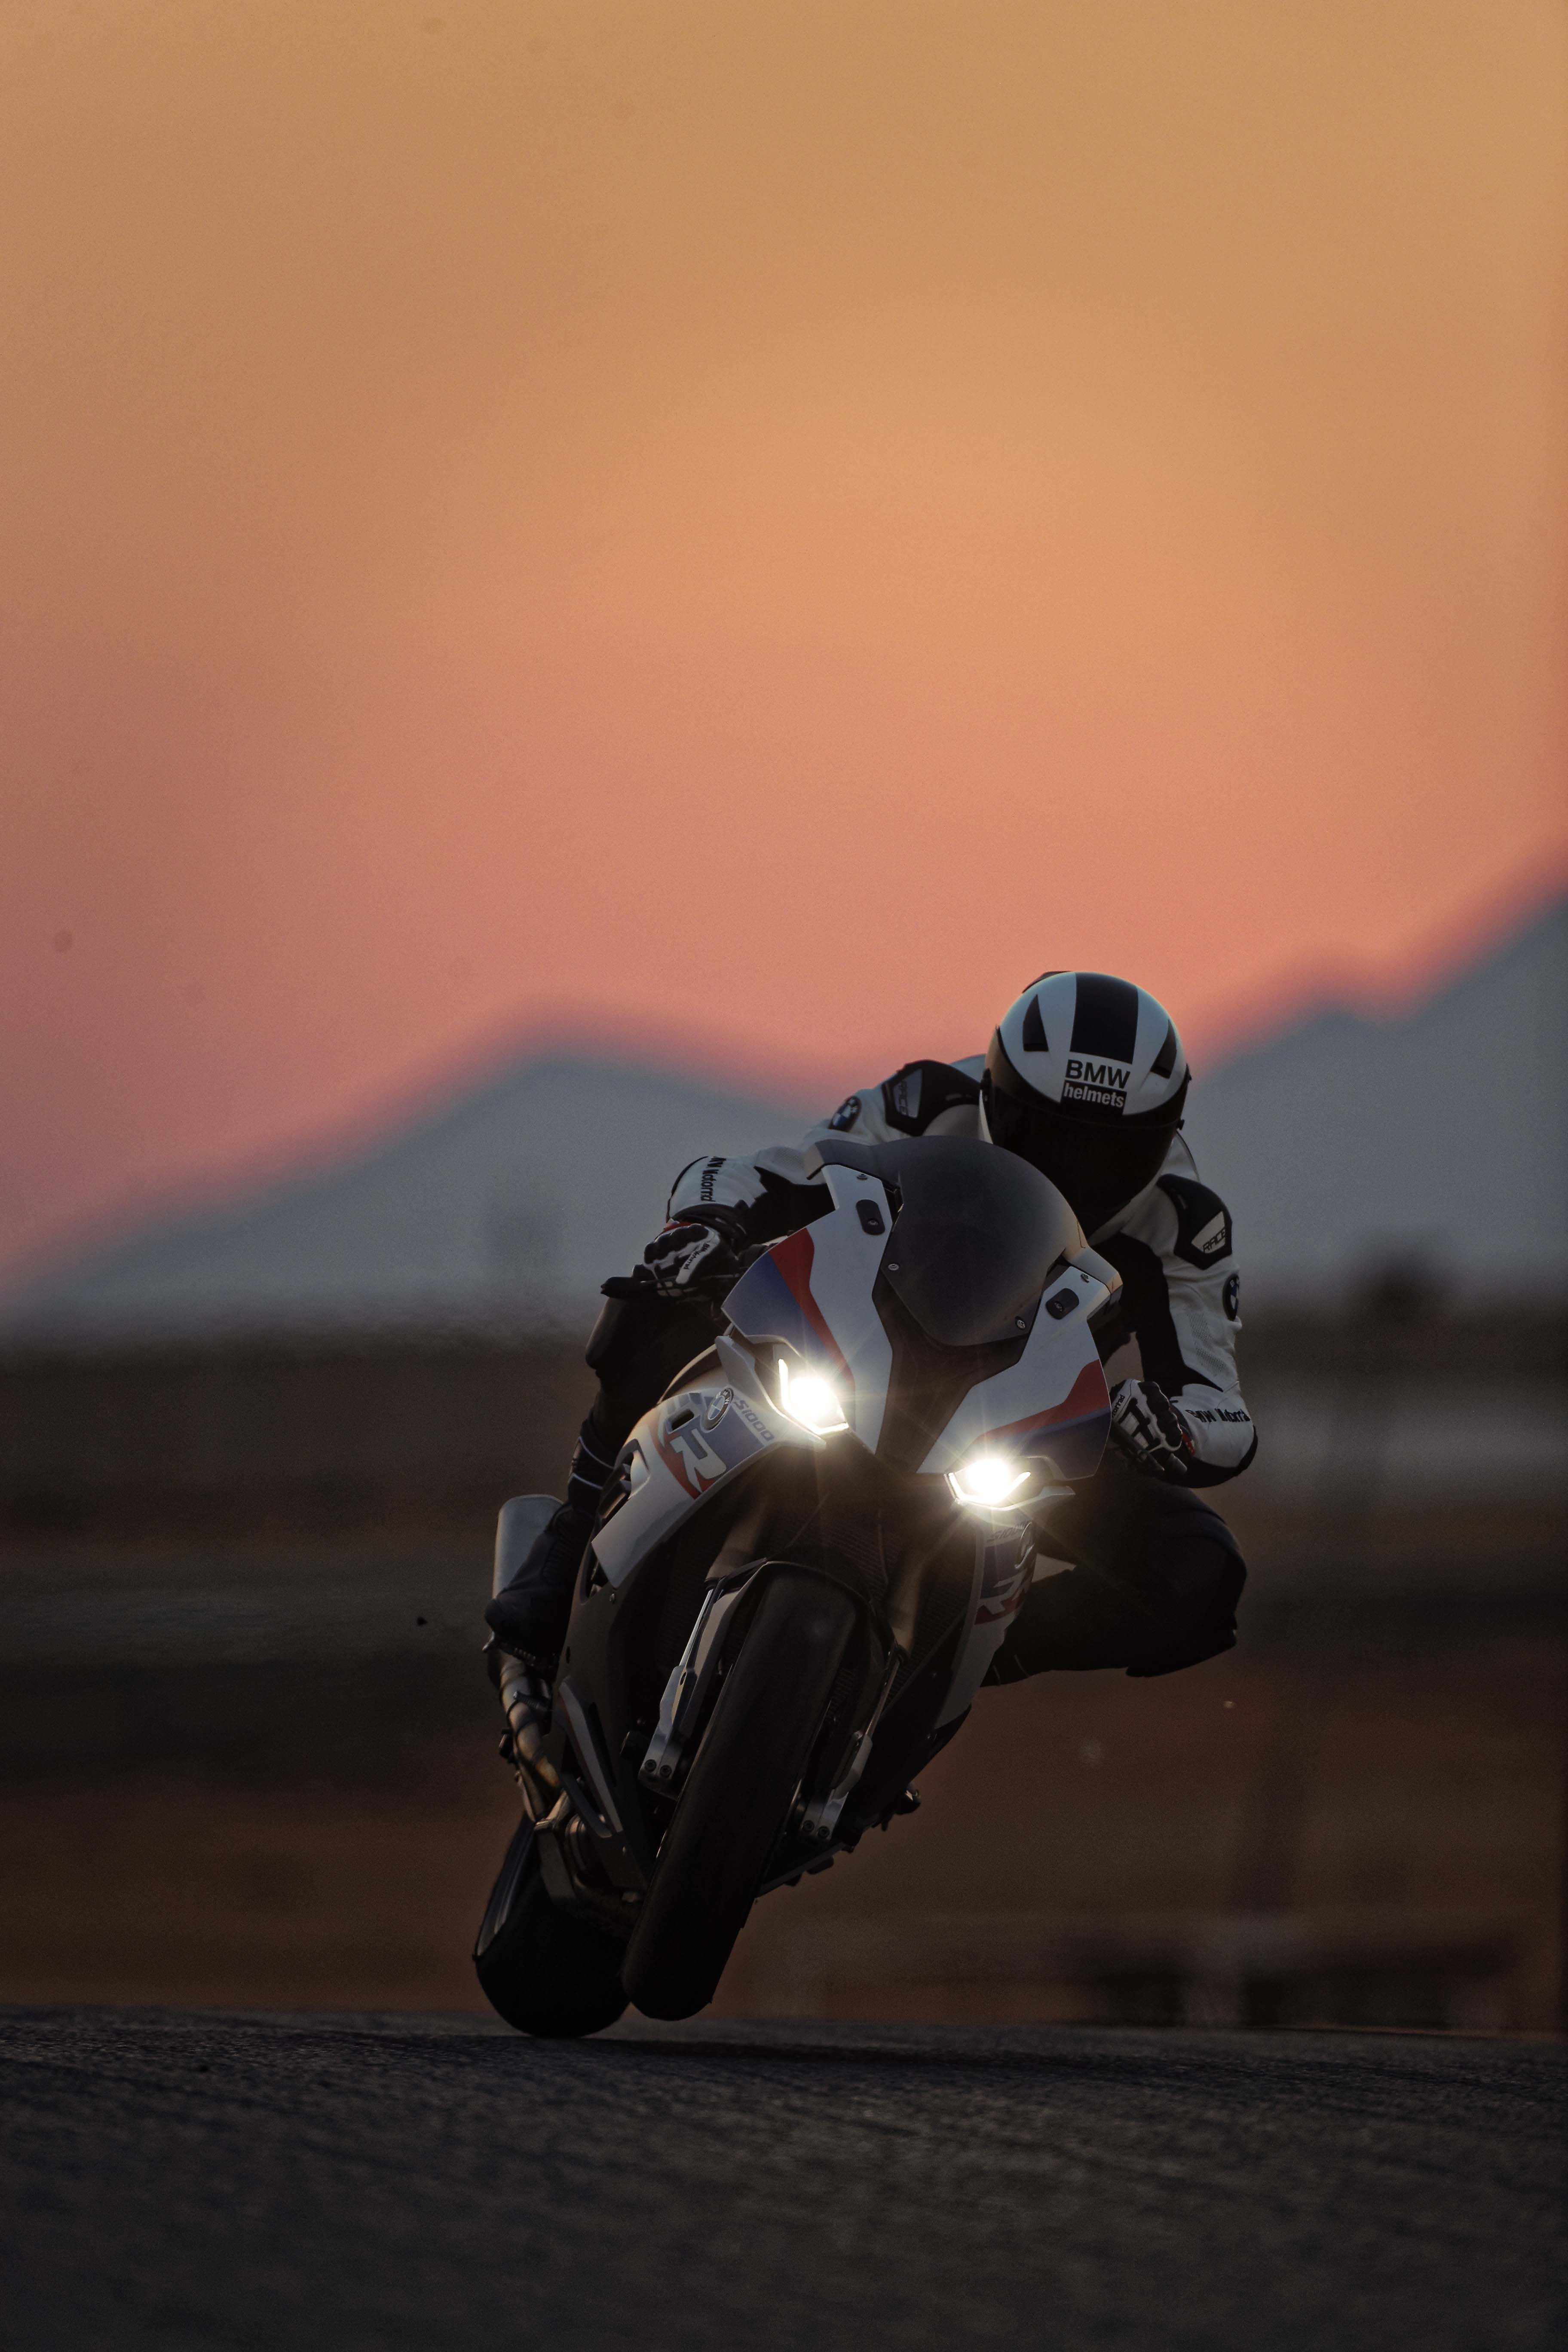 The New Bmw S1000rr Superbike Is Finally Here Asphalt Rubber